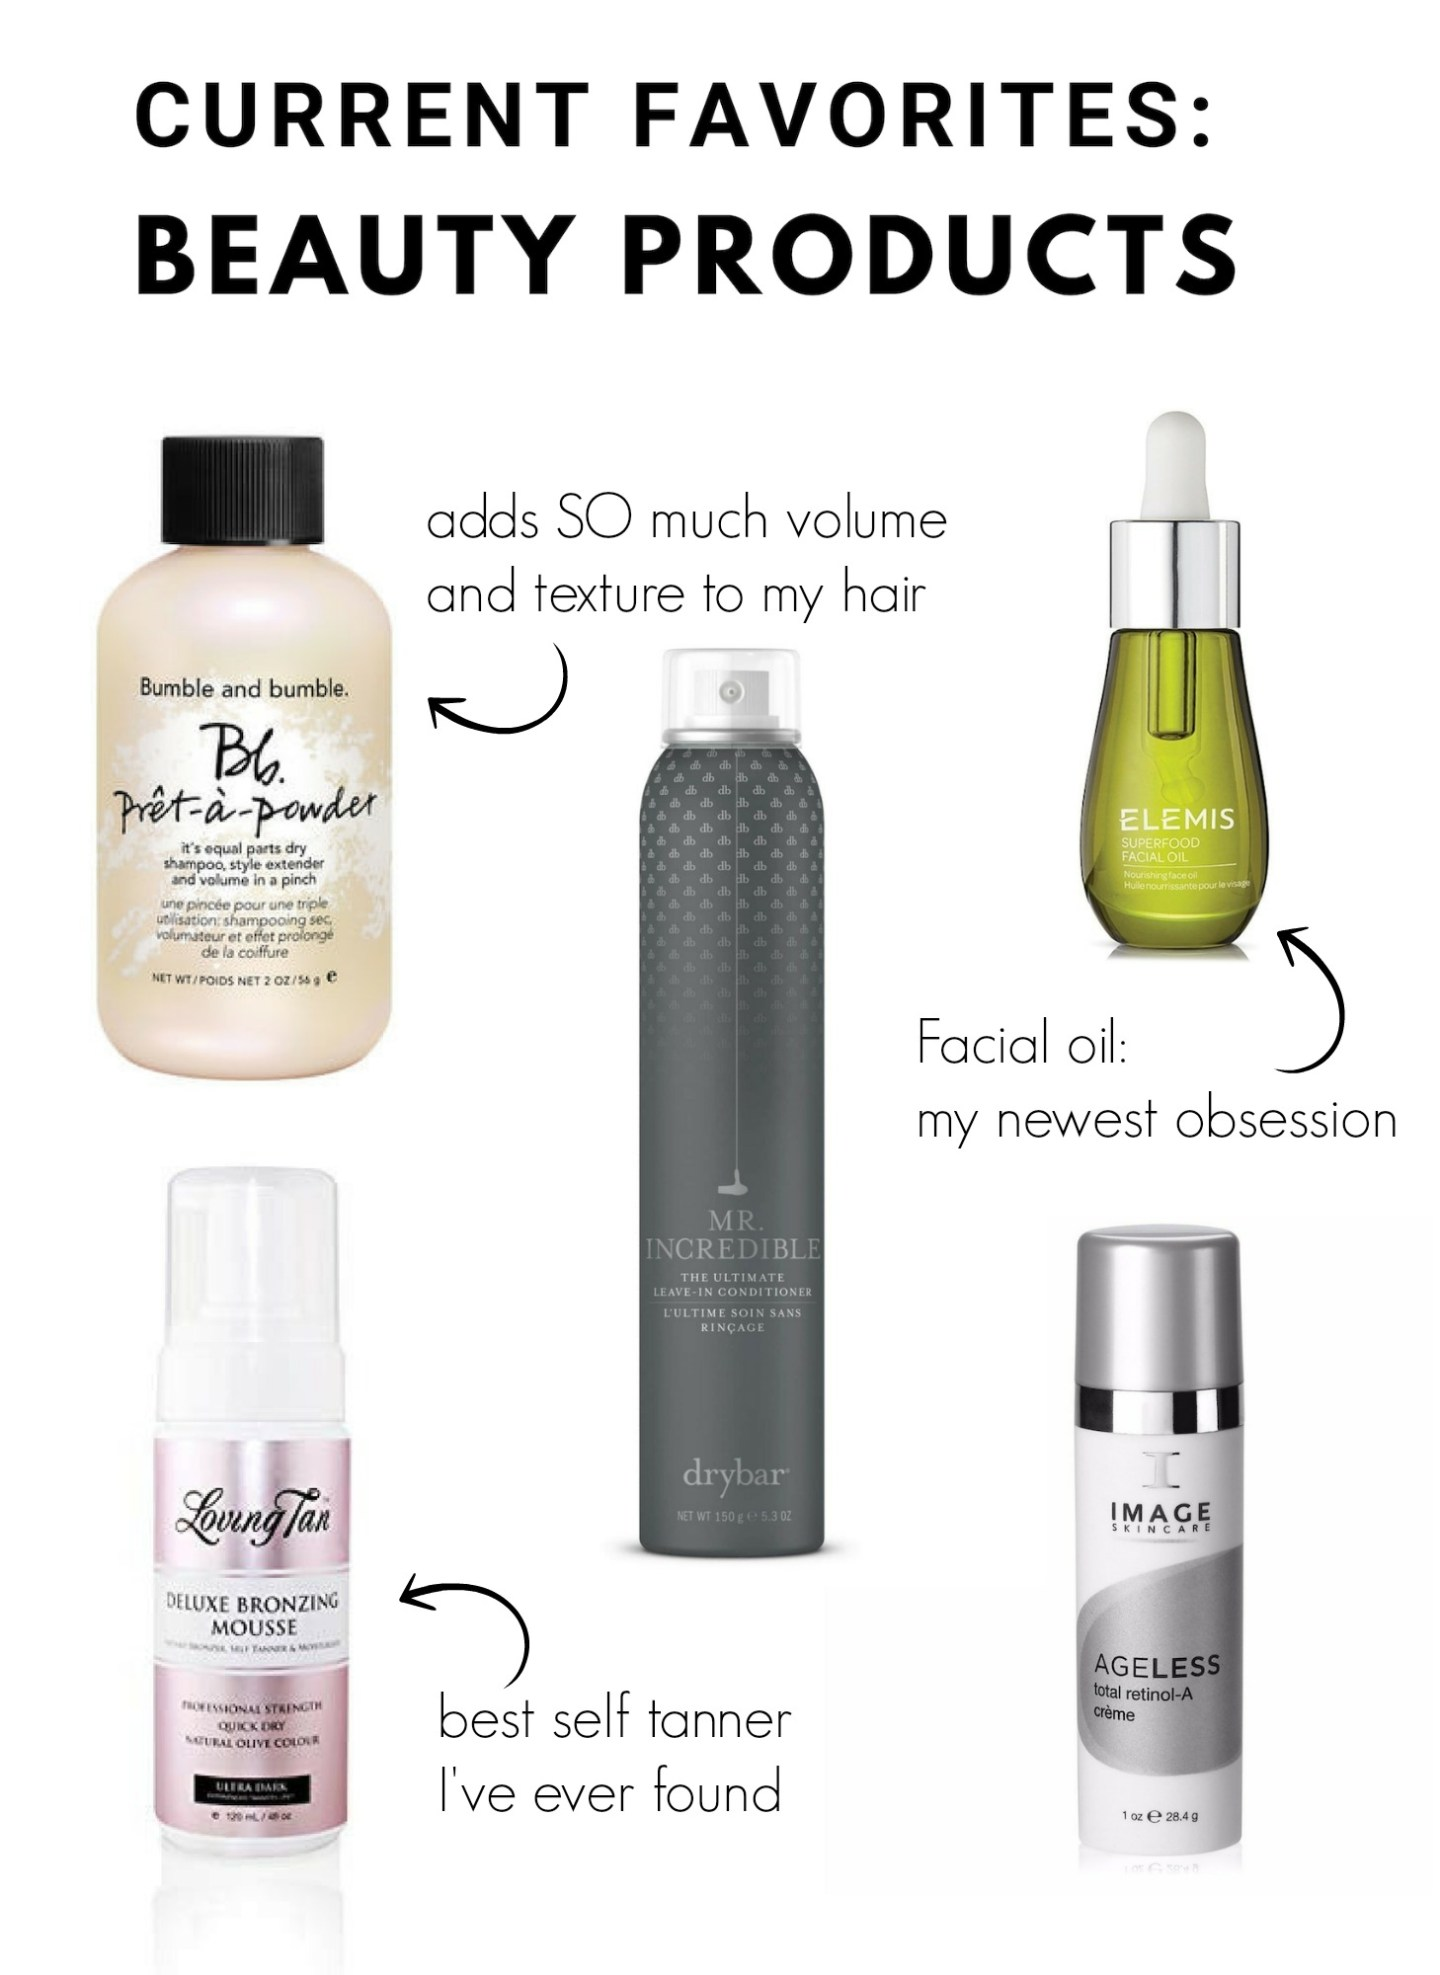 Beauty Product Favorites